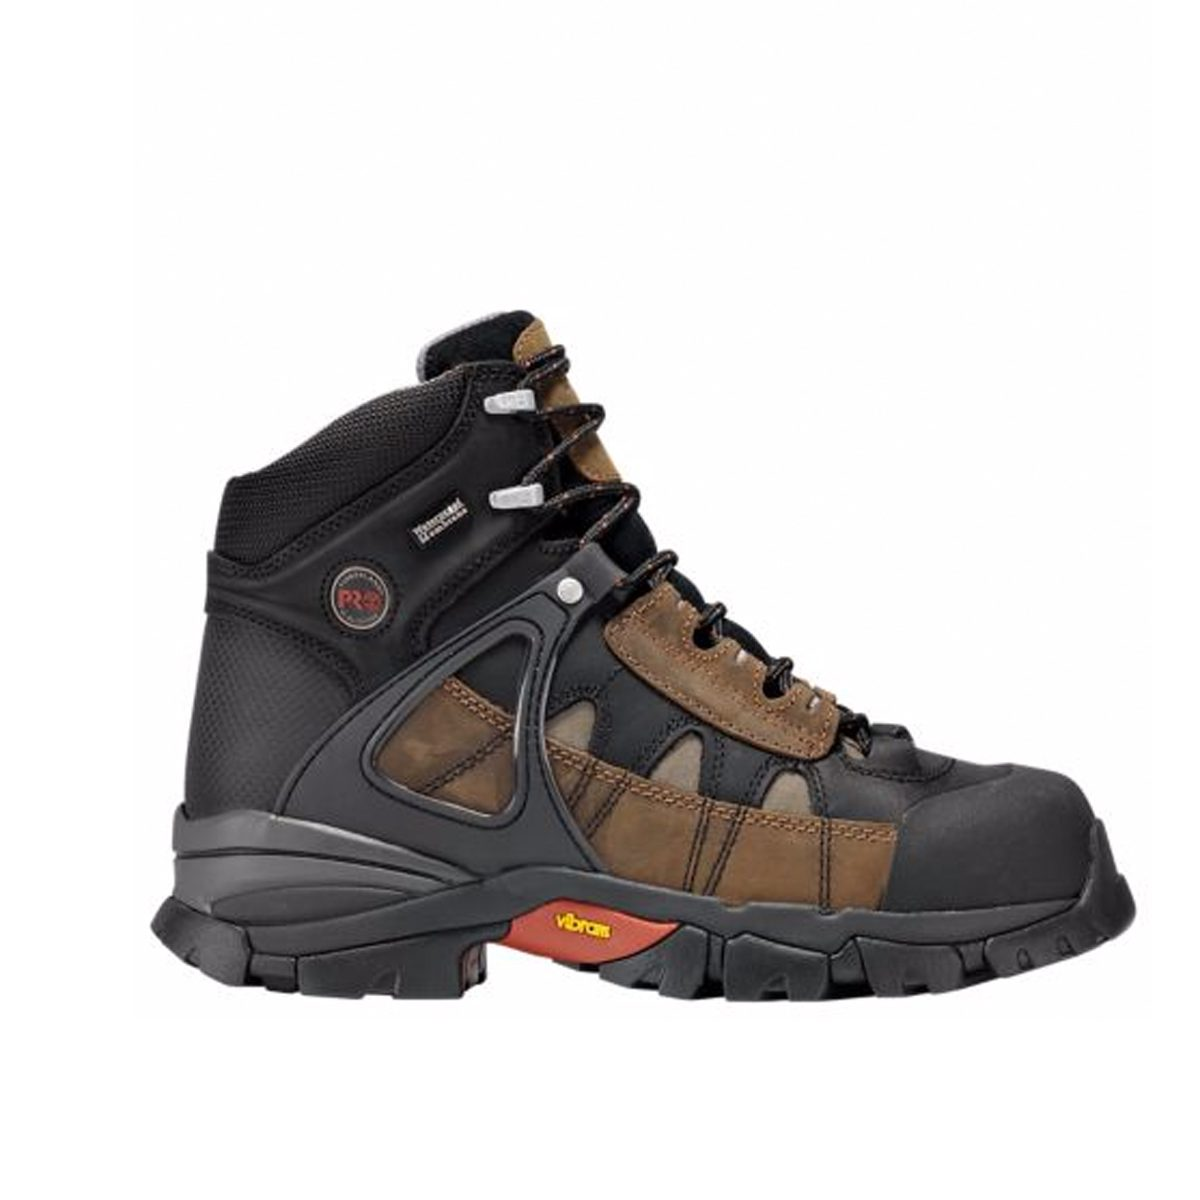 Insulated Boots